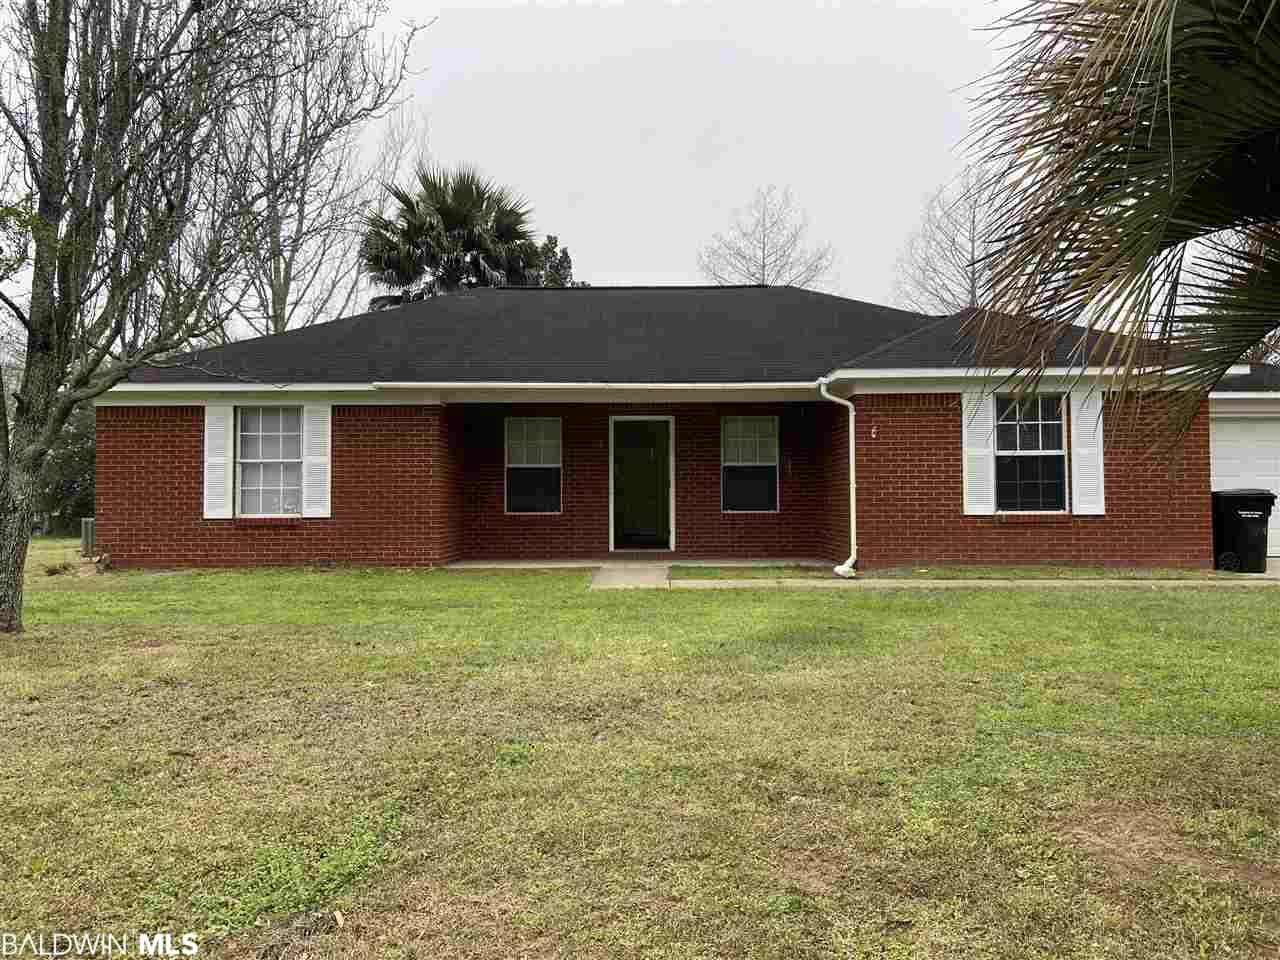 Charming 3/2 with NO HOA DUES! Covenant location close to I-10.The home has a Large yard, fresh paint, updated cabinets in kitchen with granite countertops, stainless steel appliances, high ceilings in the living-room, relaxing master bedroom with new carpet and walk-in closet.